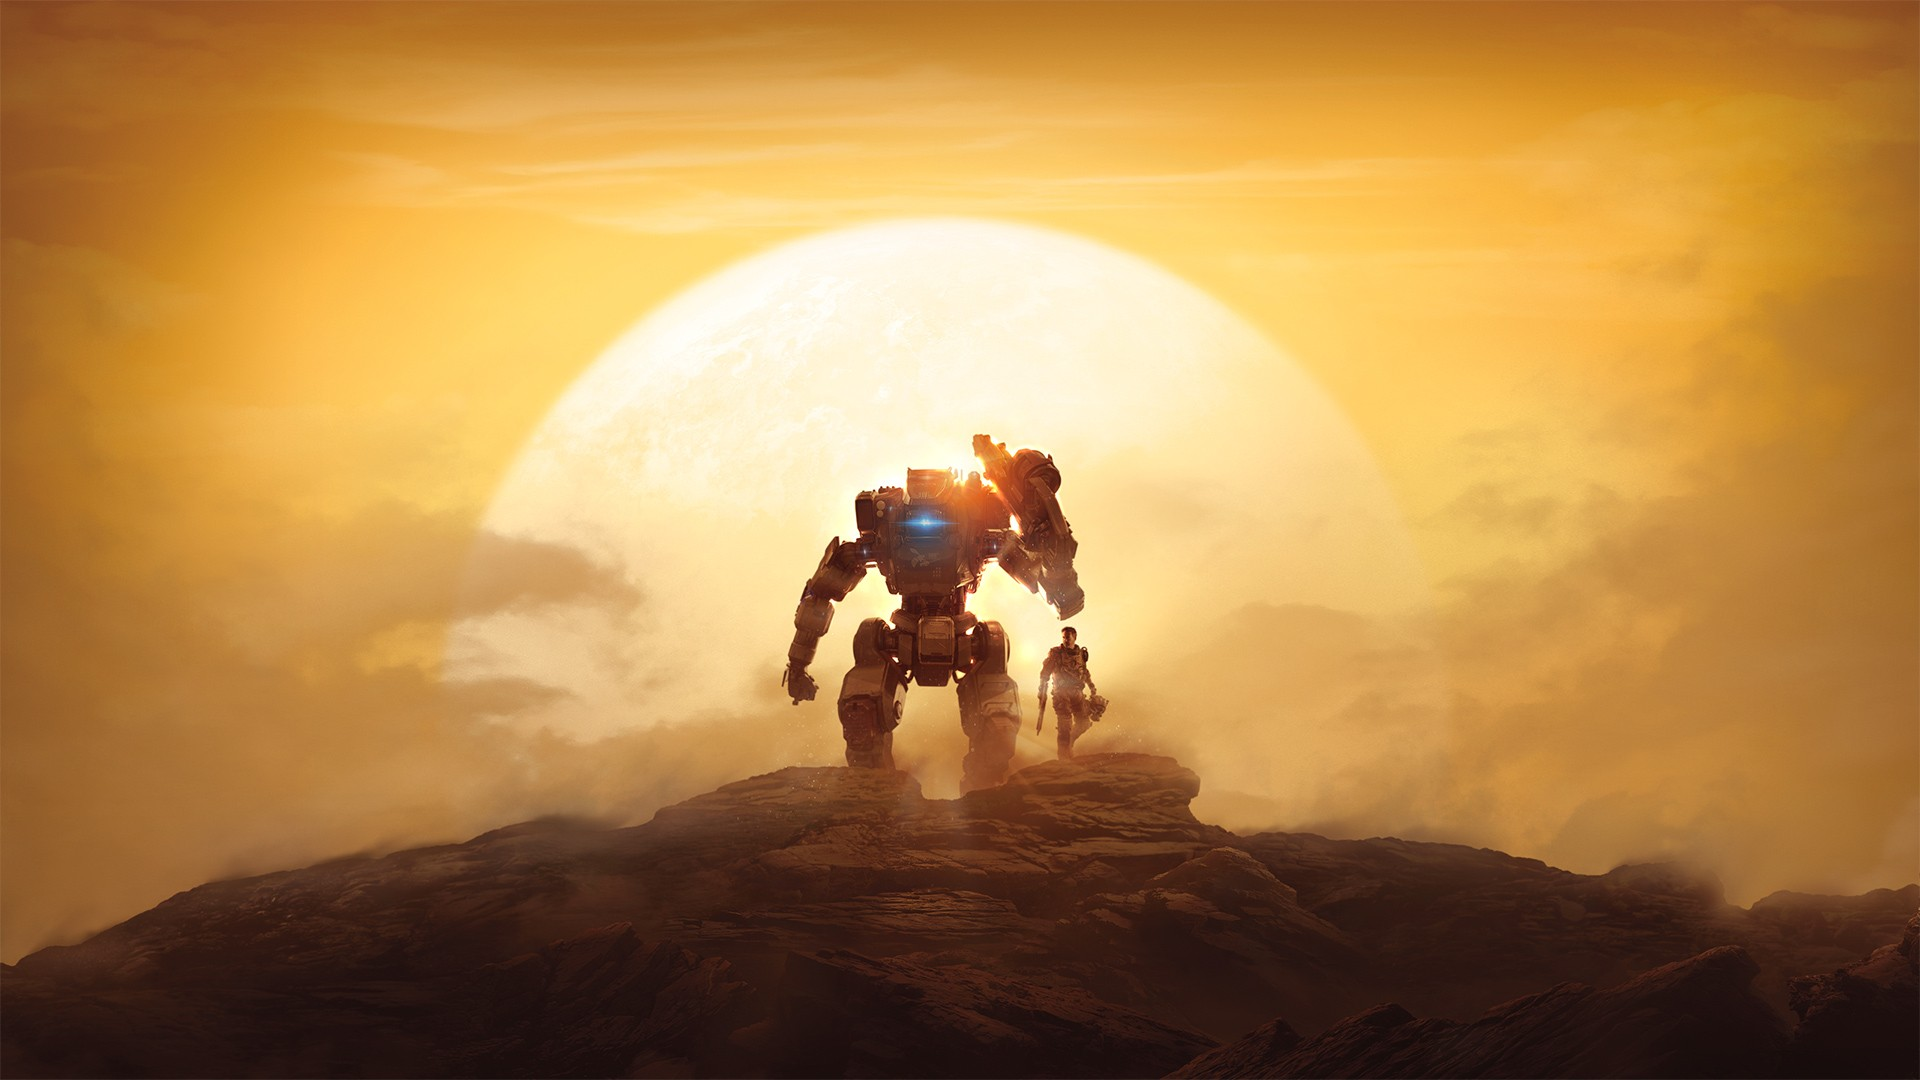 Fall Wallpaper For Laptops Titanfall 2 Hd Wallpapers Hd Wallpapers Id 21841